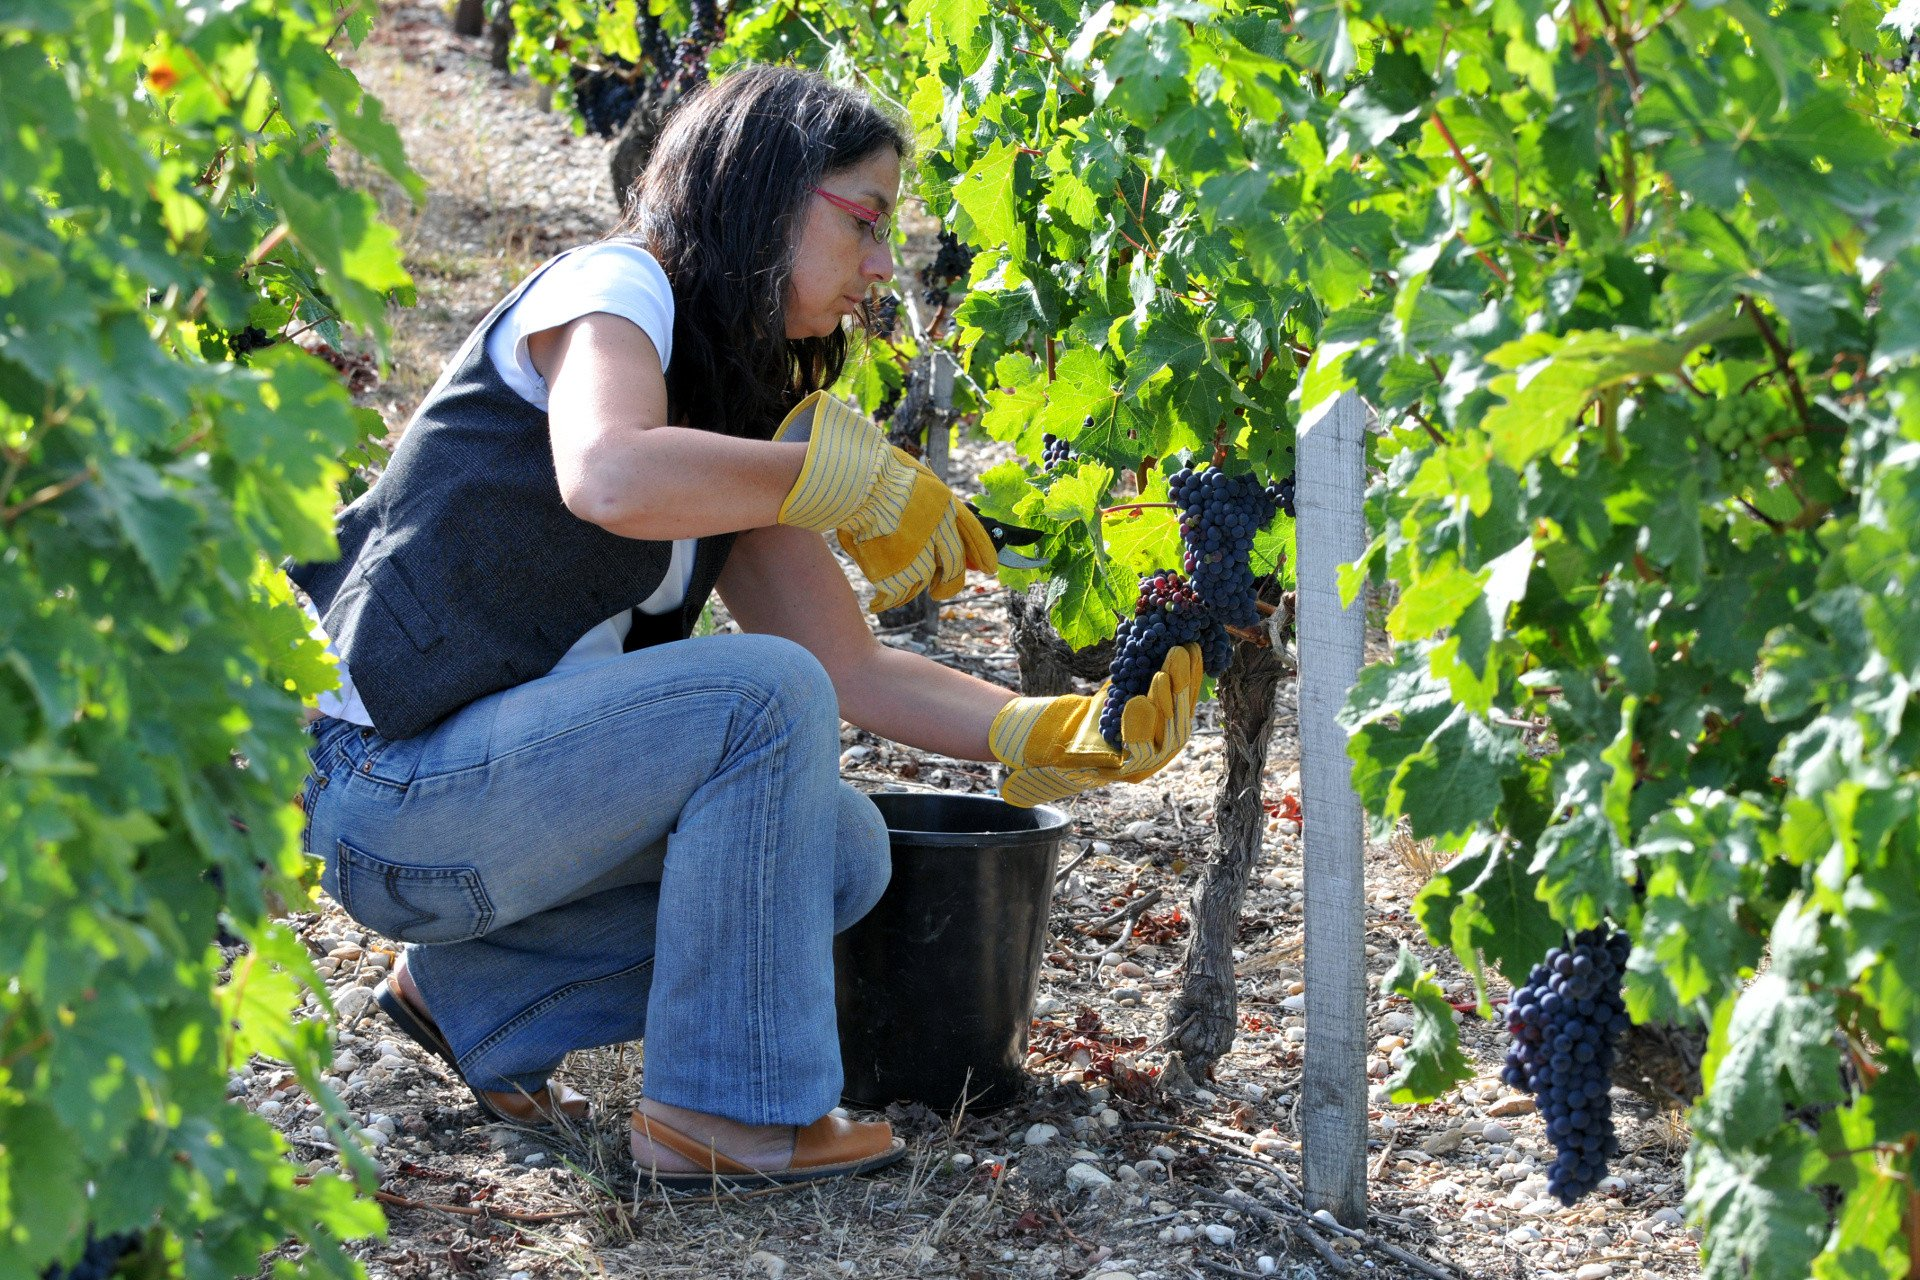 Woman harvesting clusters of grapes